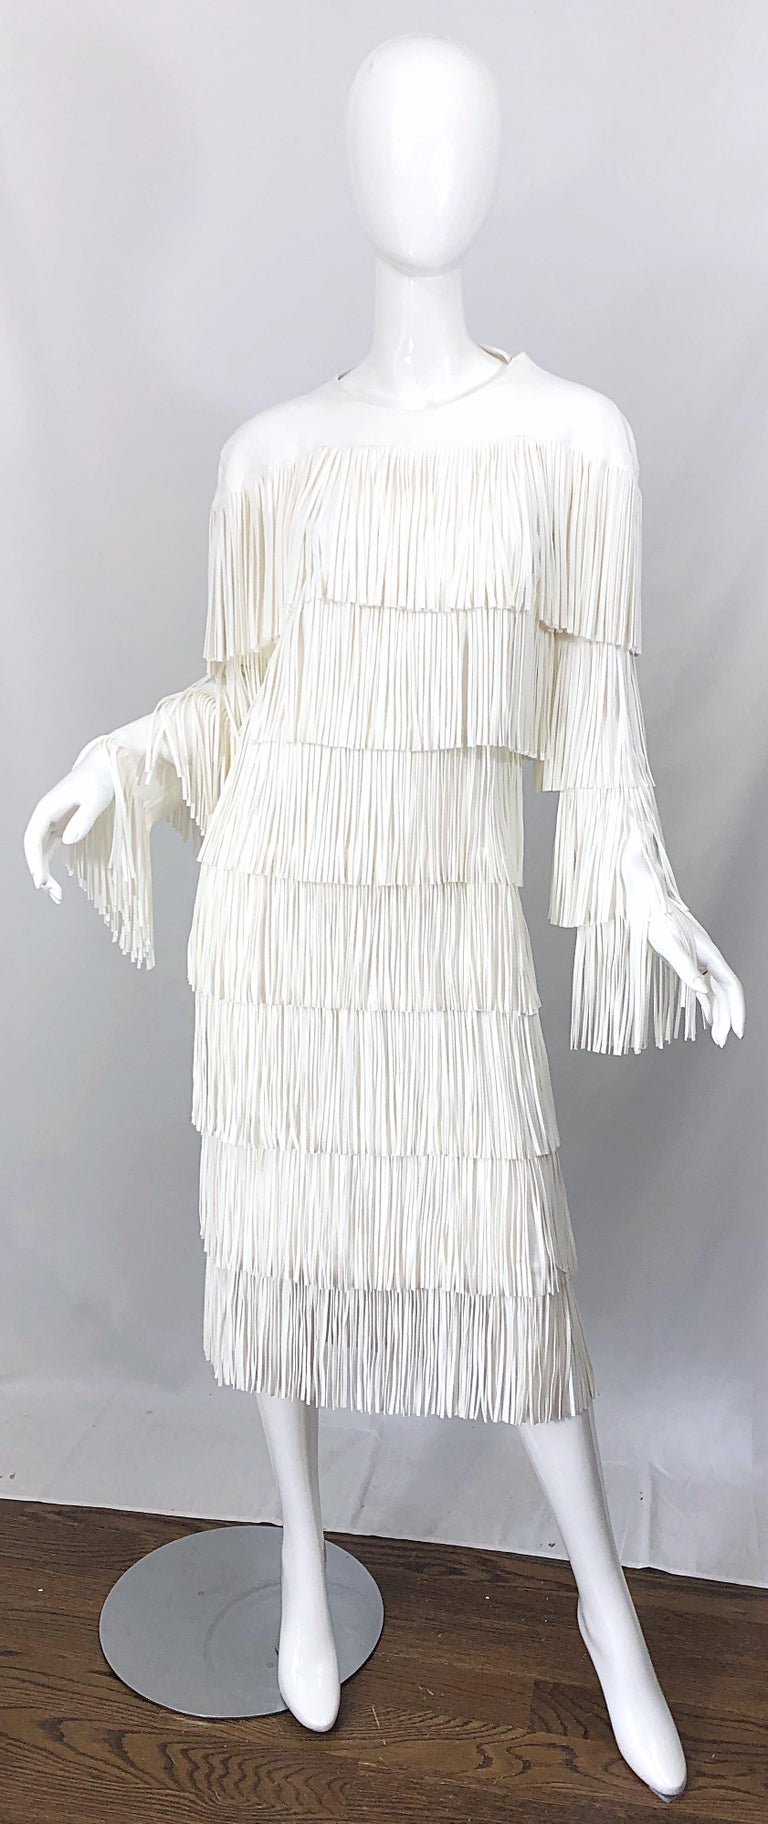 NWT Tom Ford $7,000 Runway Fall 2015 Size 42 / 8 White Open Back Fringe Dress For Sale 9